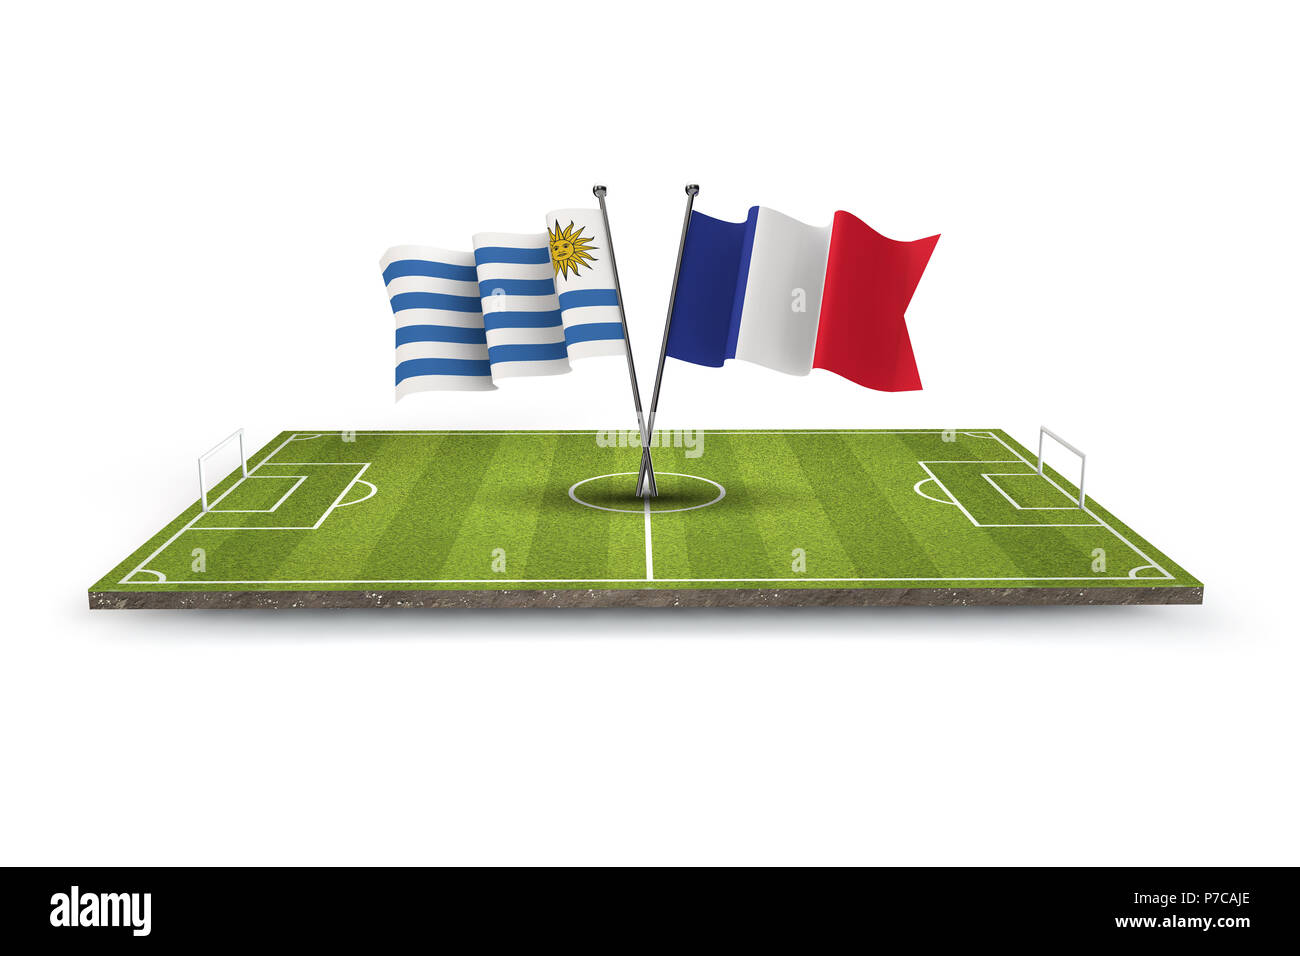 French League Cup Final Stock Photos & French League Cup Final Stock